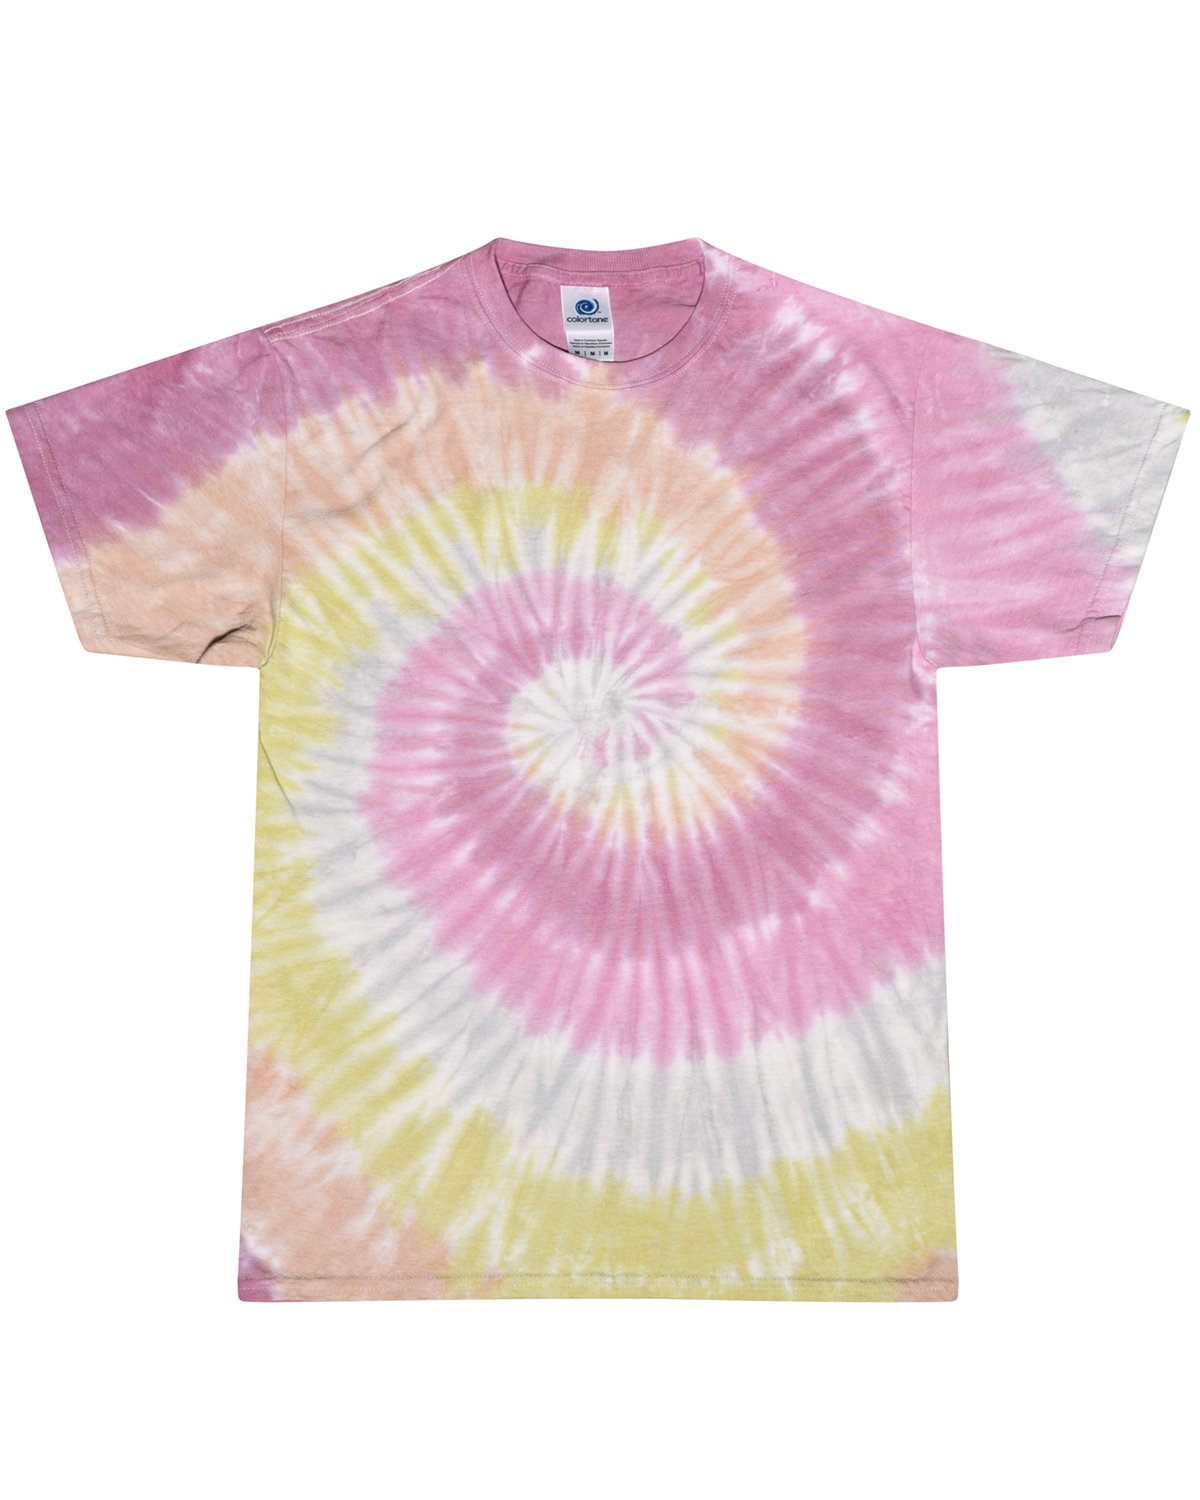 Tie-Dye Adult 5.4 oz., 100% Cotton T-Shirt DESERT ROSE